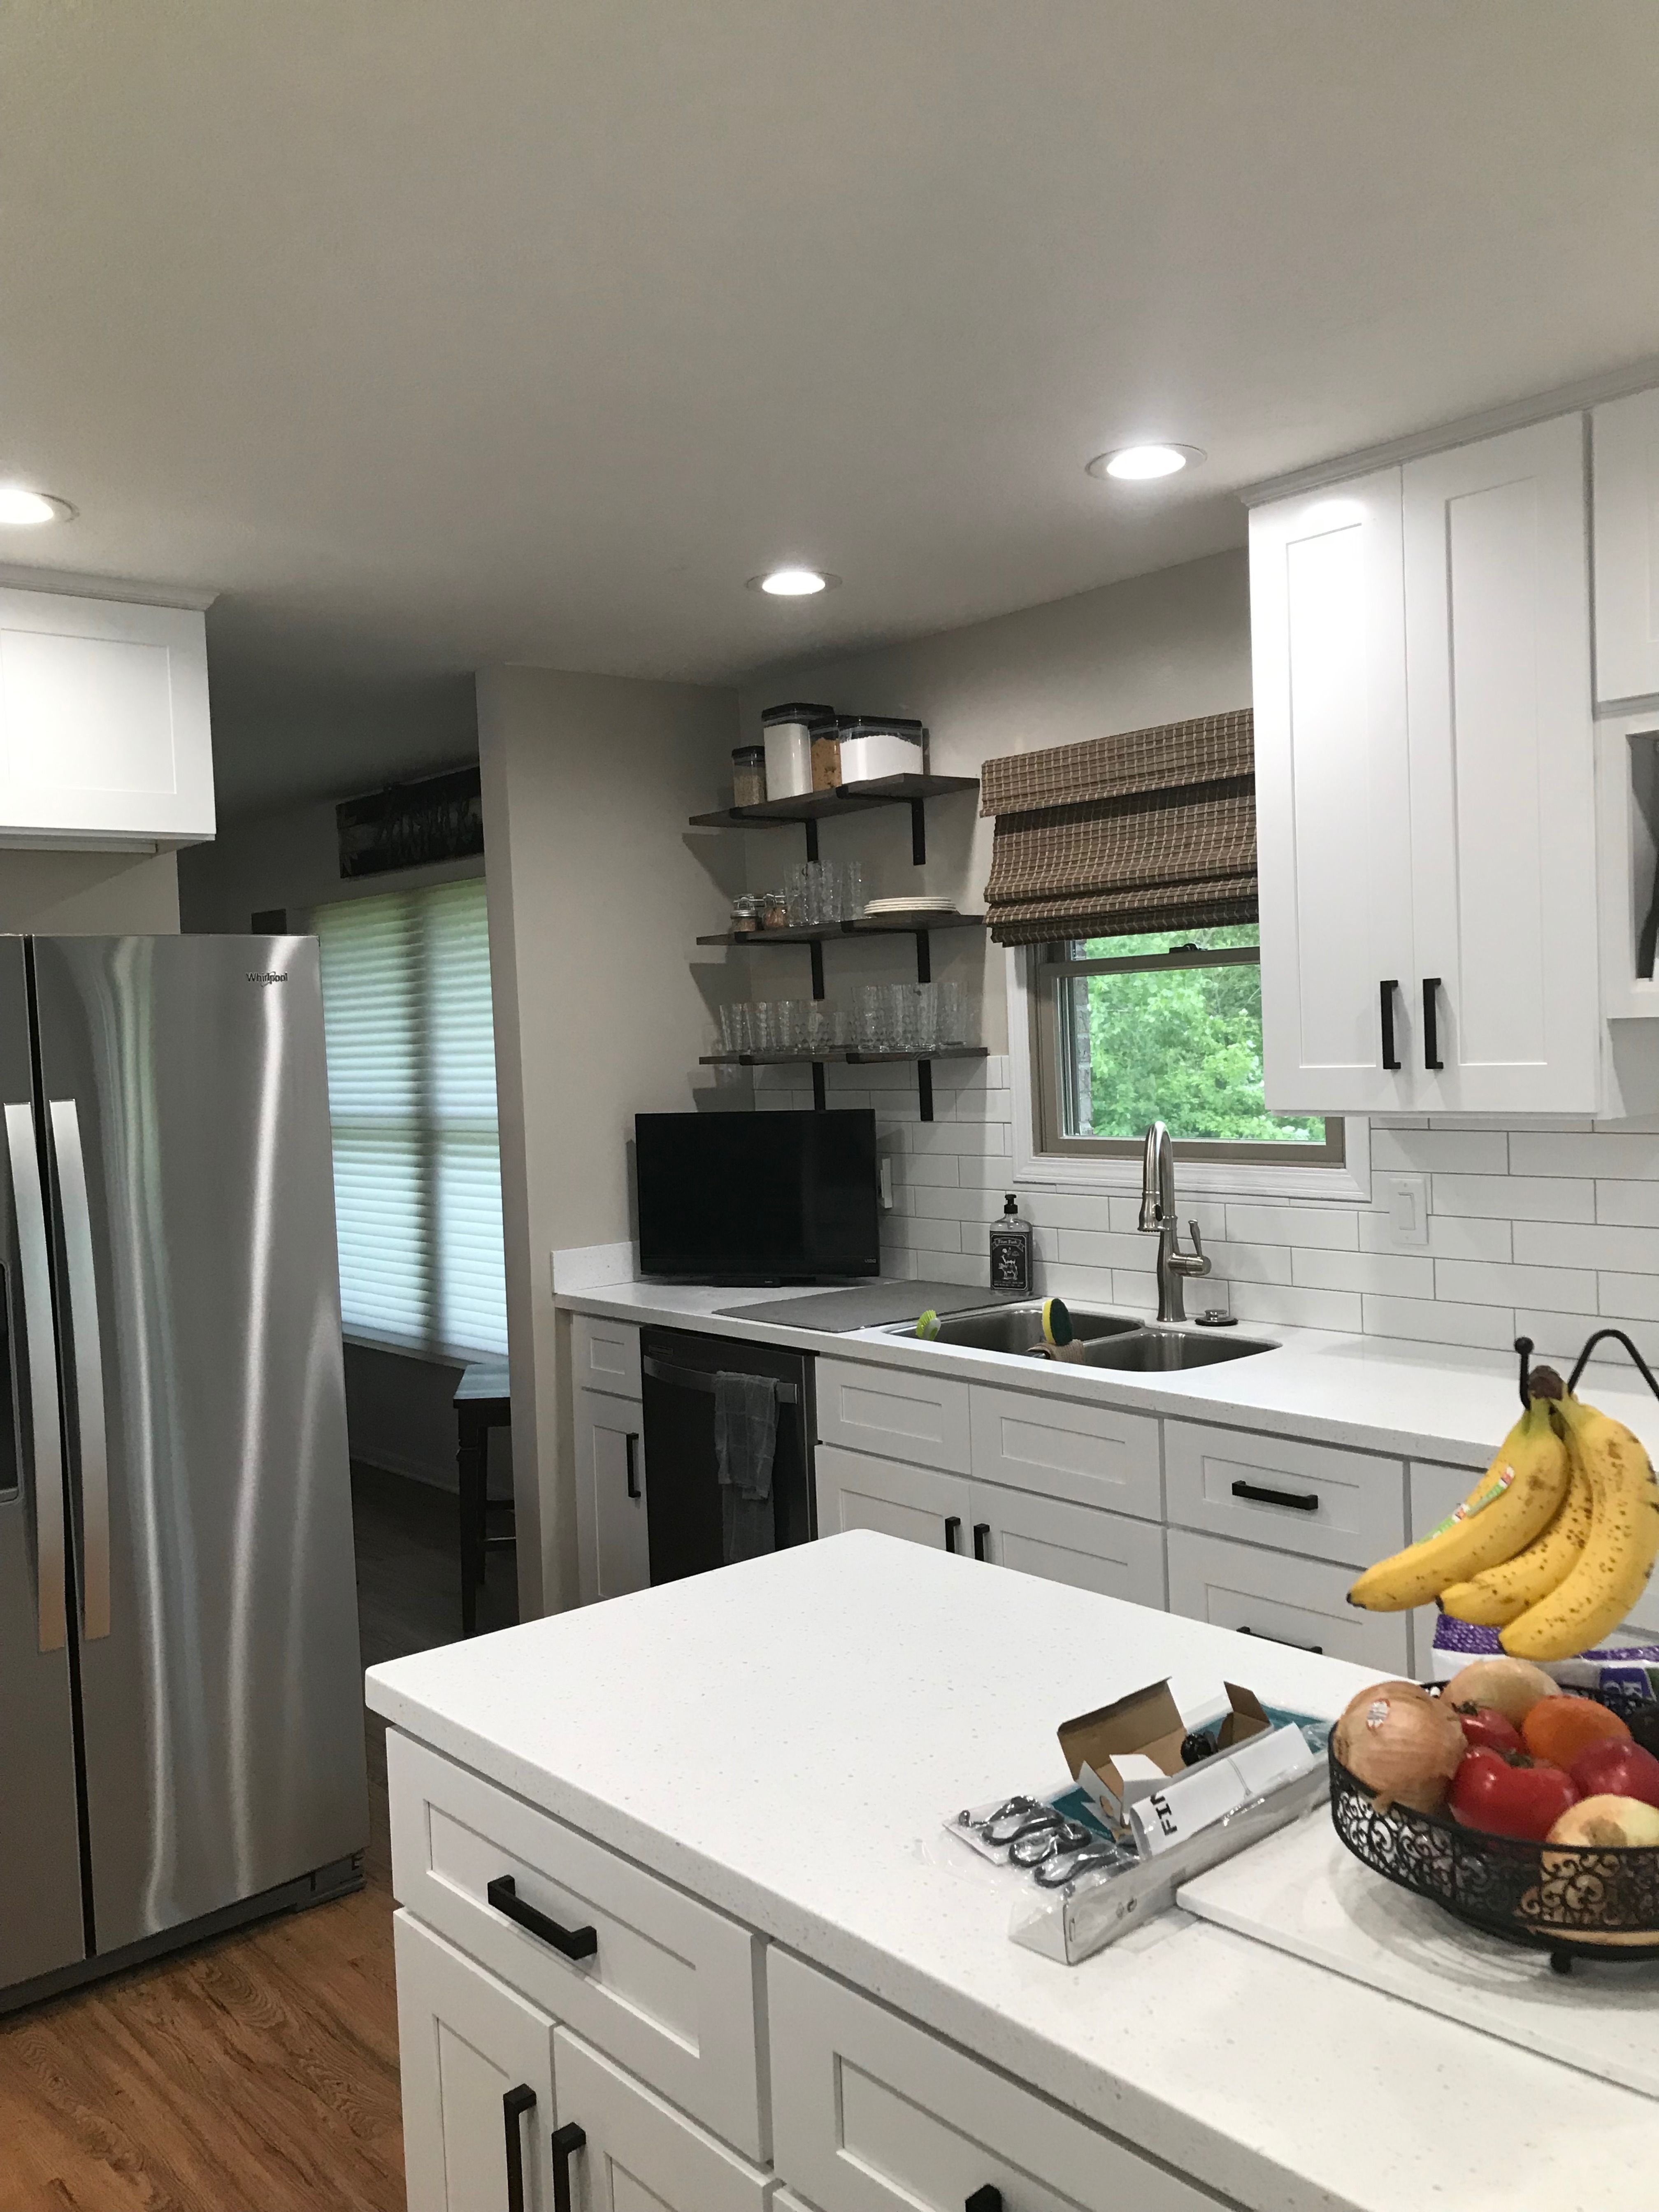 Lily Ann Cabinets White Shaker Kitchen White Shaker Kitchen Cabinets Shaker Kitchen Cabinets Kitchen Cabinet Trends